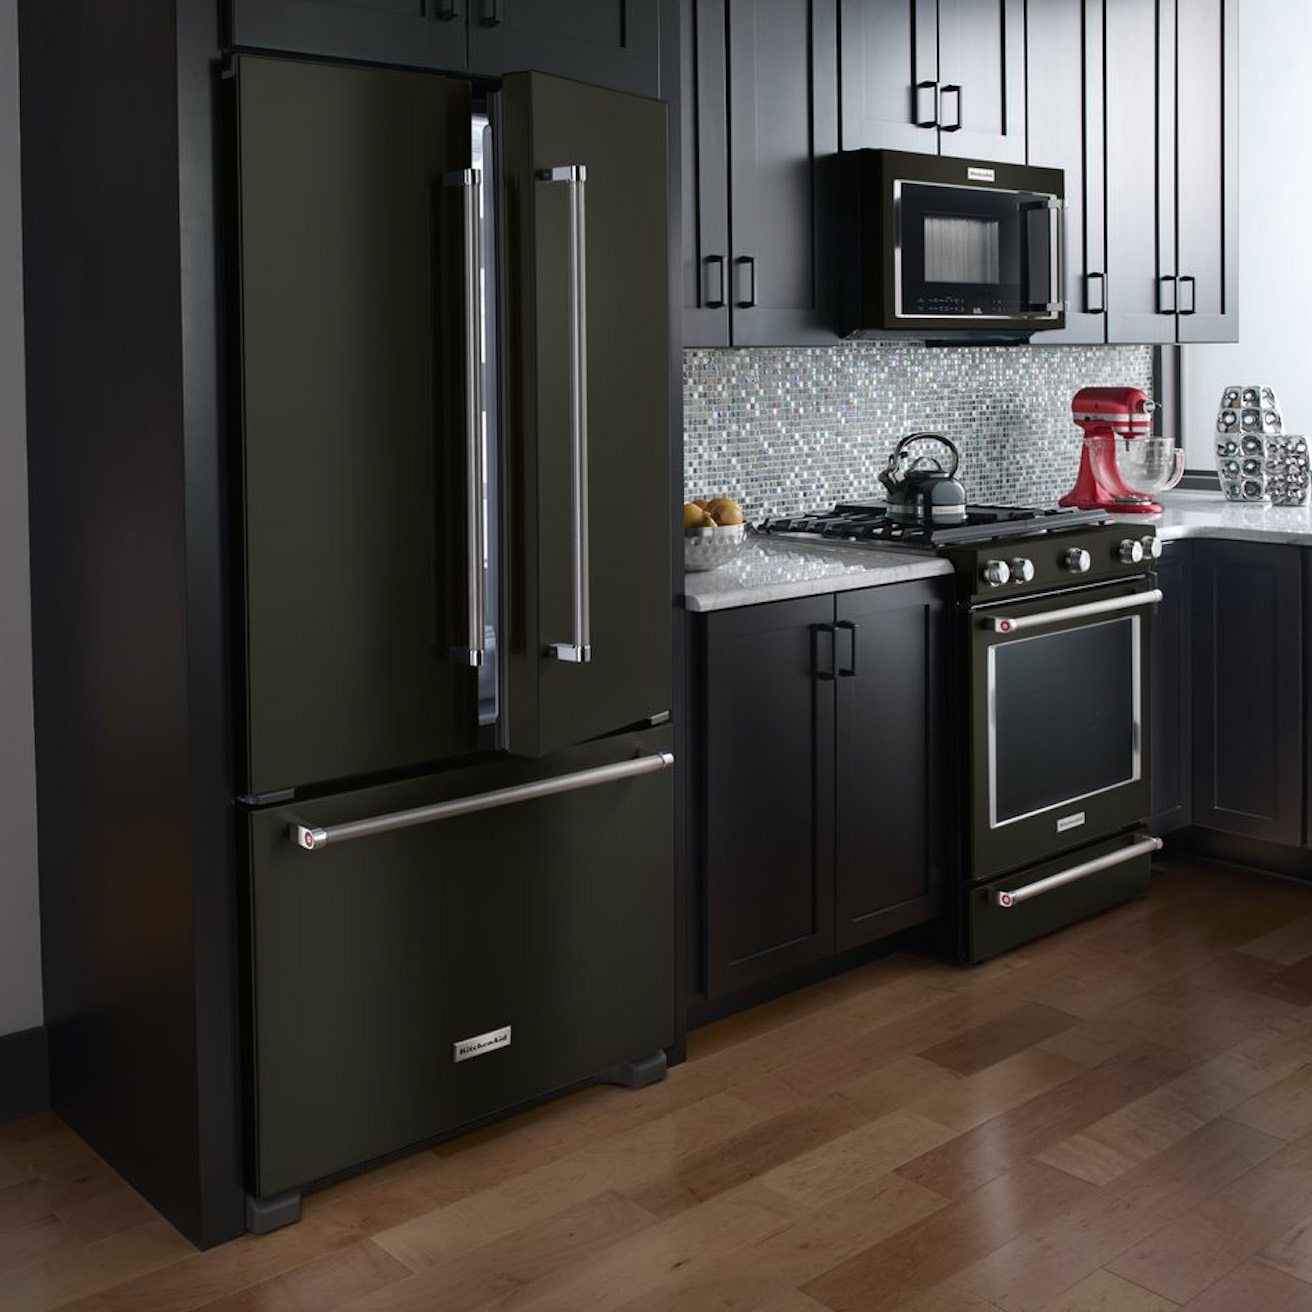 Kitchen Aid Range Black Stainless